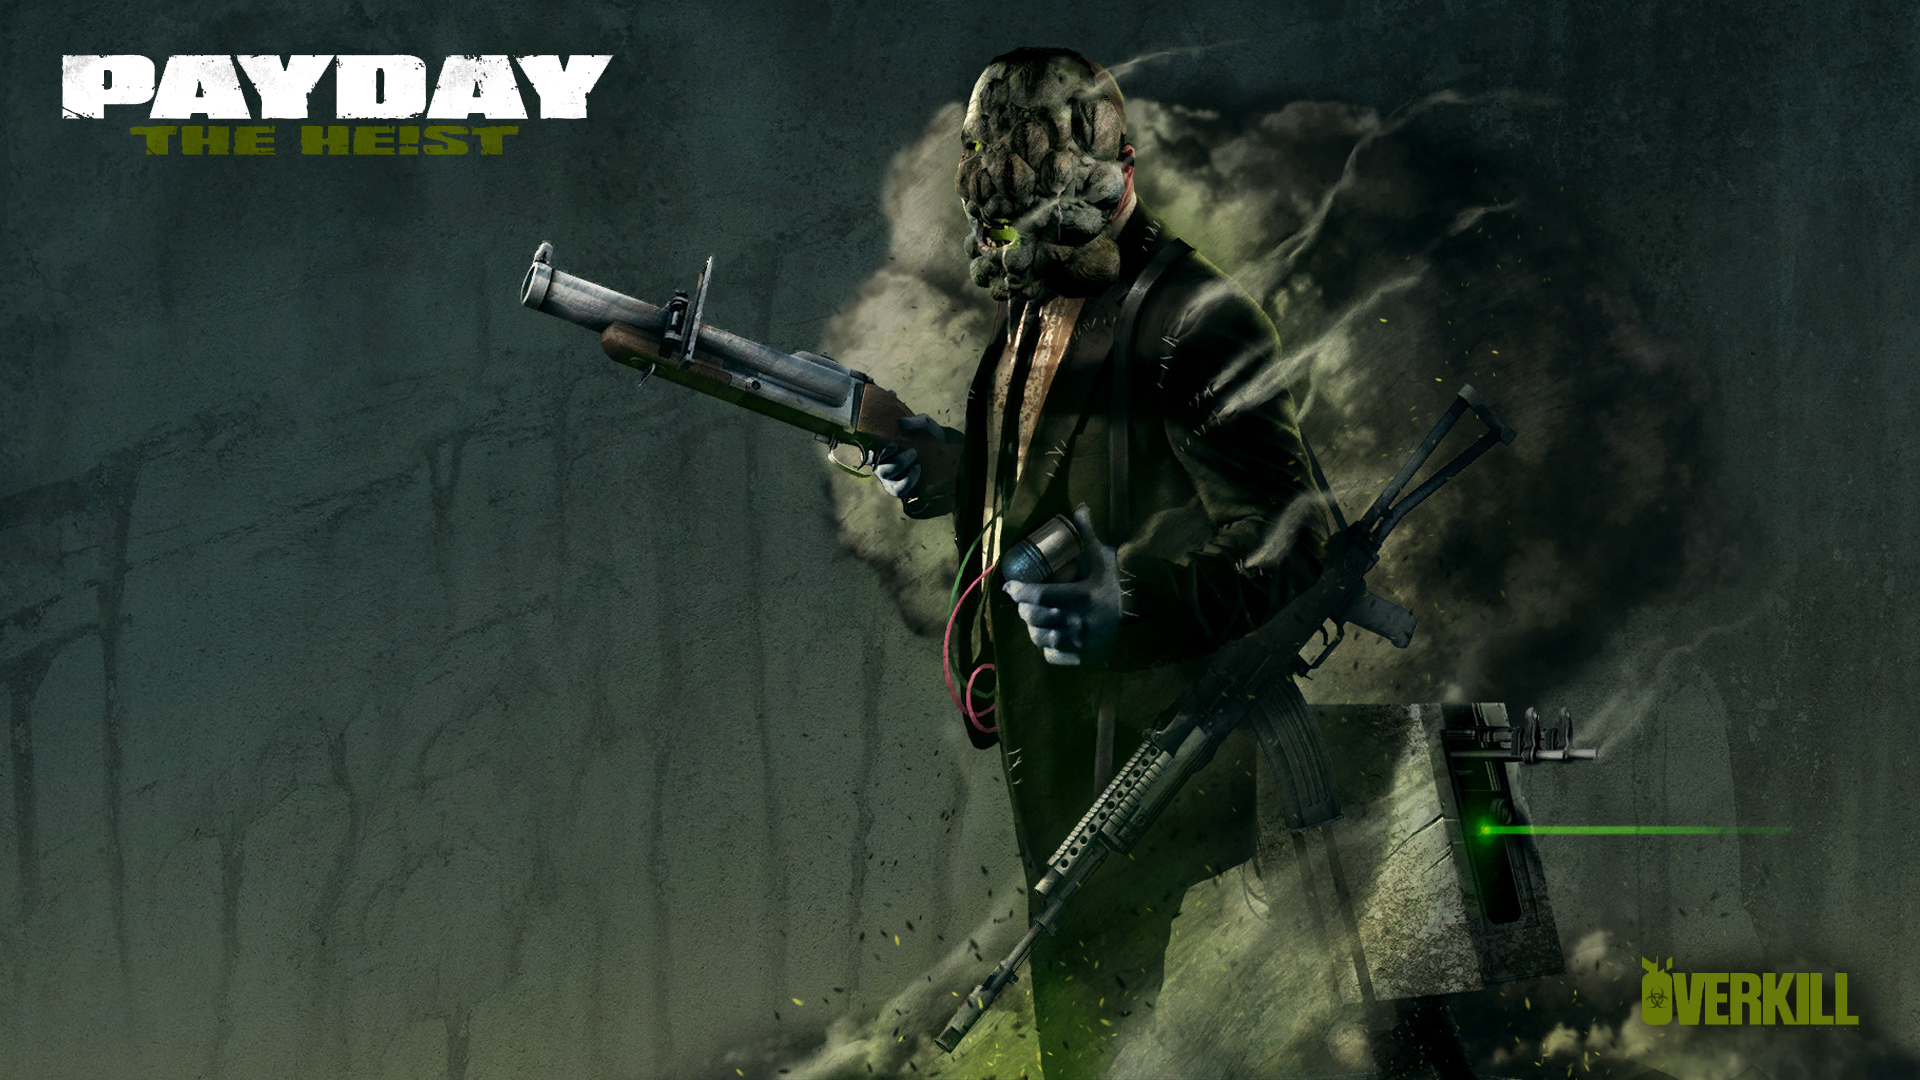 PAYDAY  The Heist ZOMBIE WP   Technician Wolf by  Meloniii on HD Wallpaper